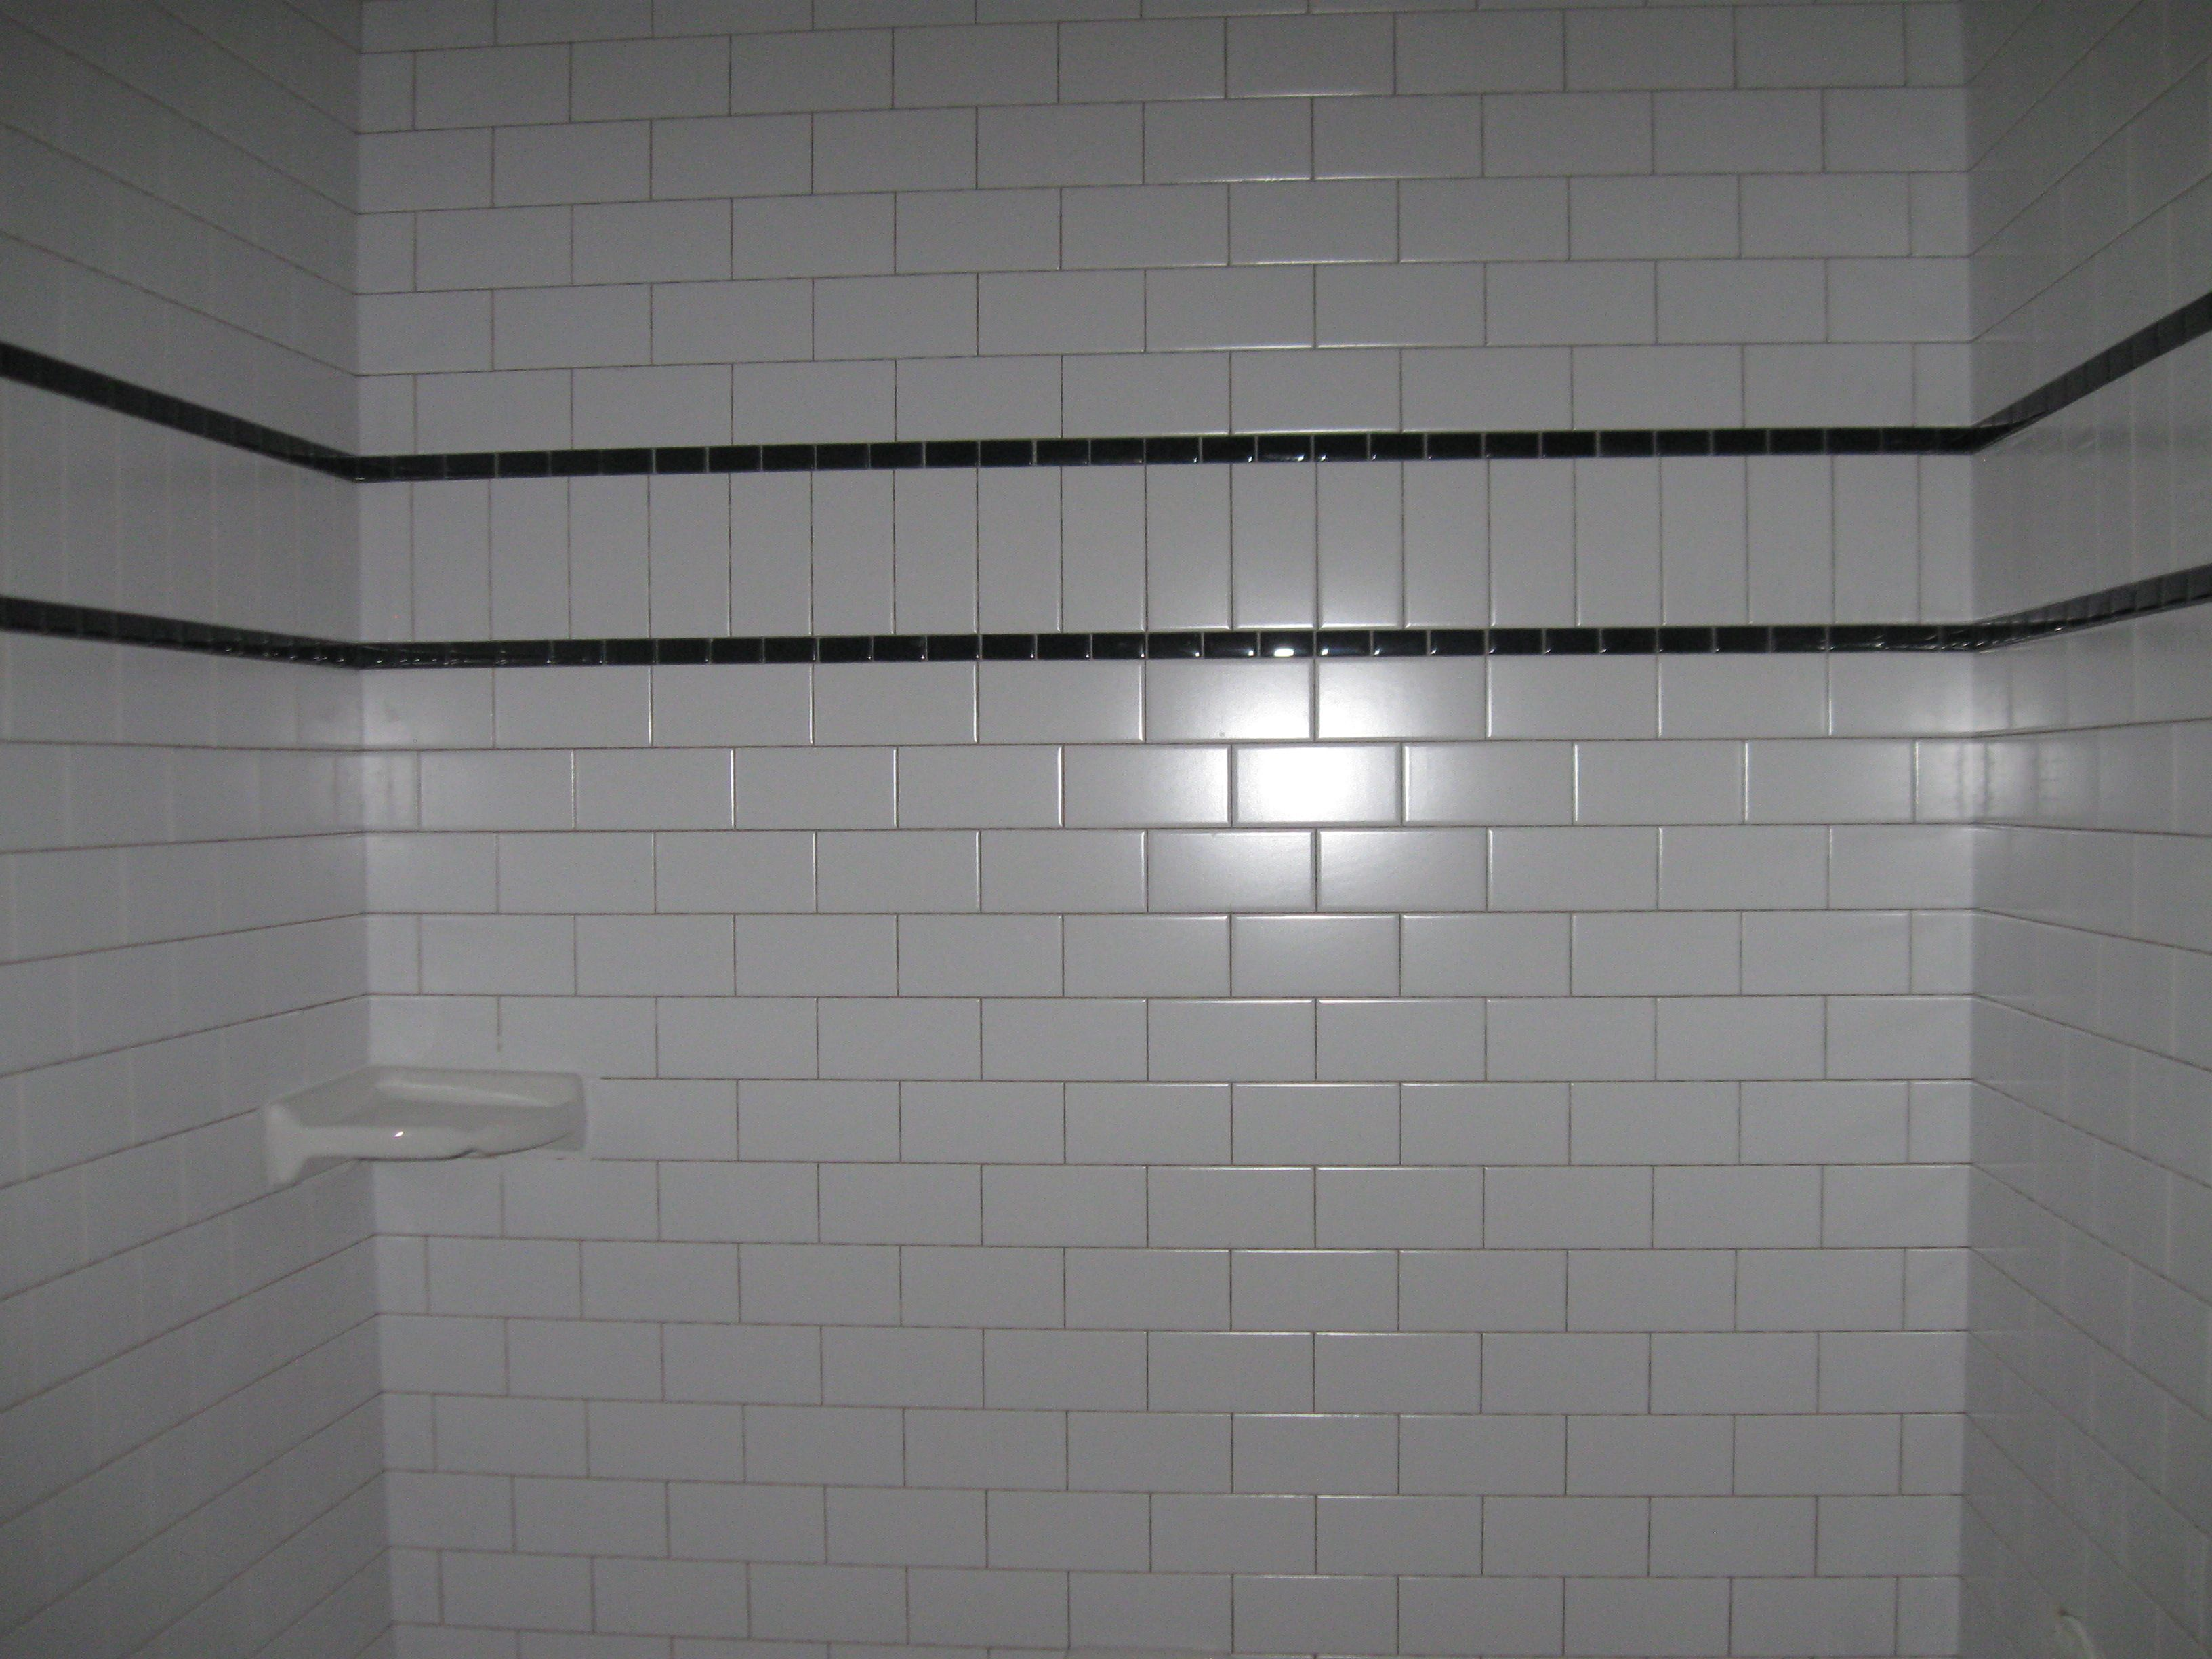 White Subway Tile With Black Accent Band Tiles Run Vertical Within